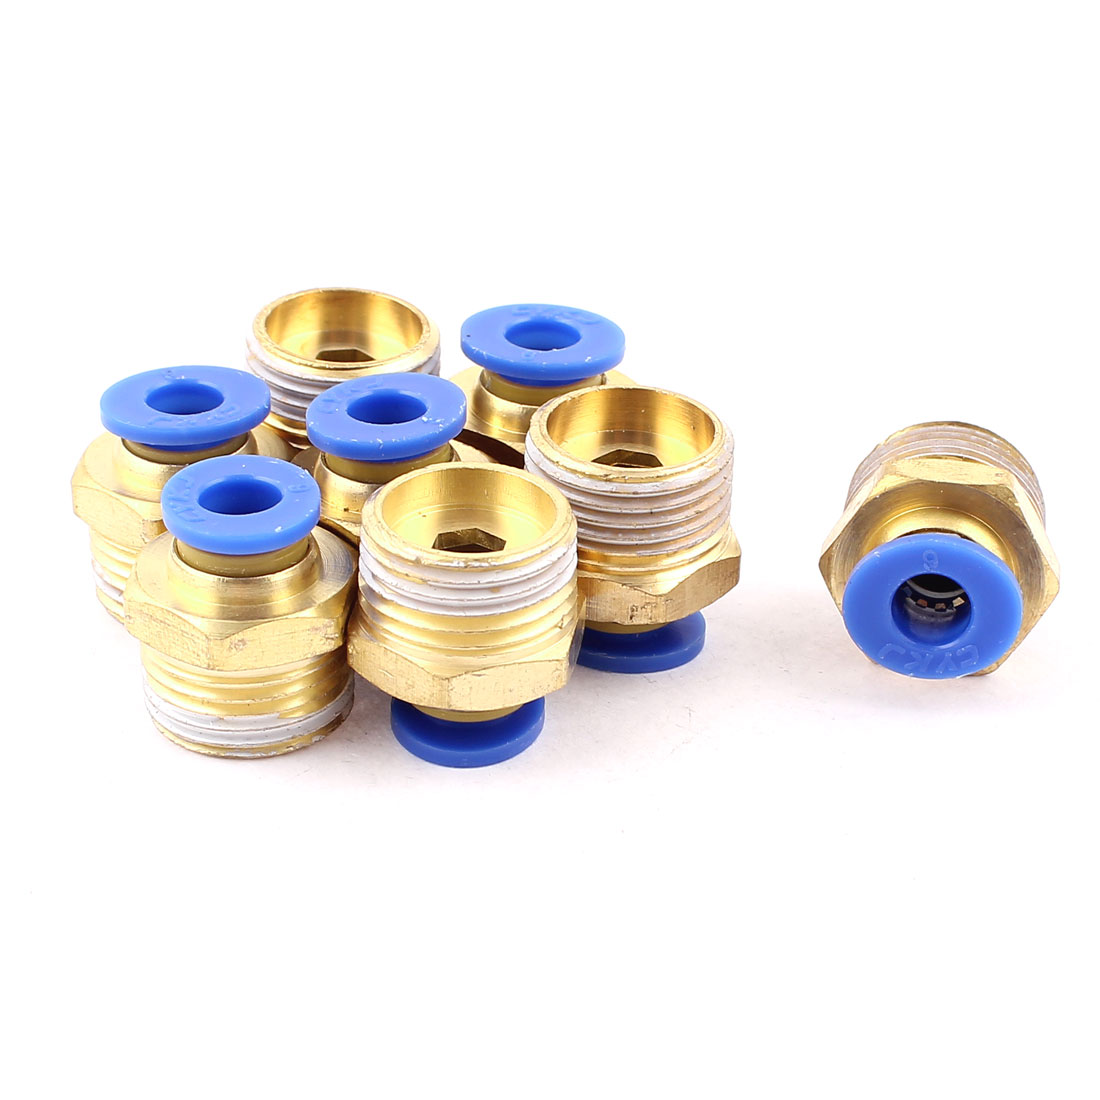 8 Pcs 6mm Tube to 3/8 BSP Thread Push in Quick Connect Coupler Fittings PC6-03